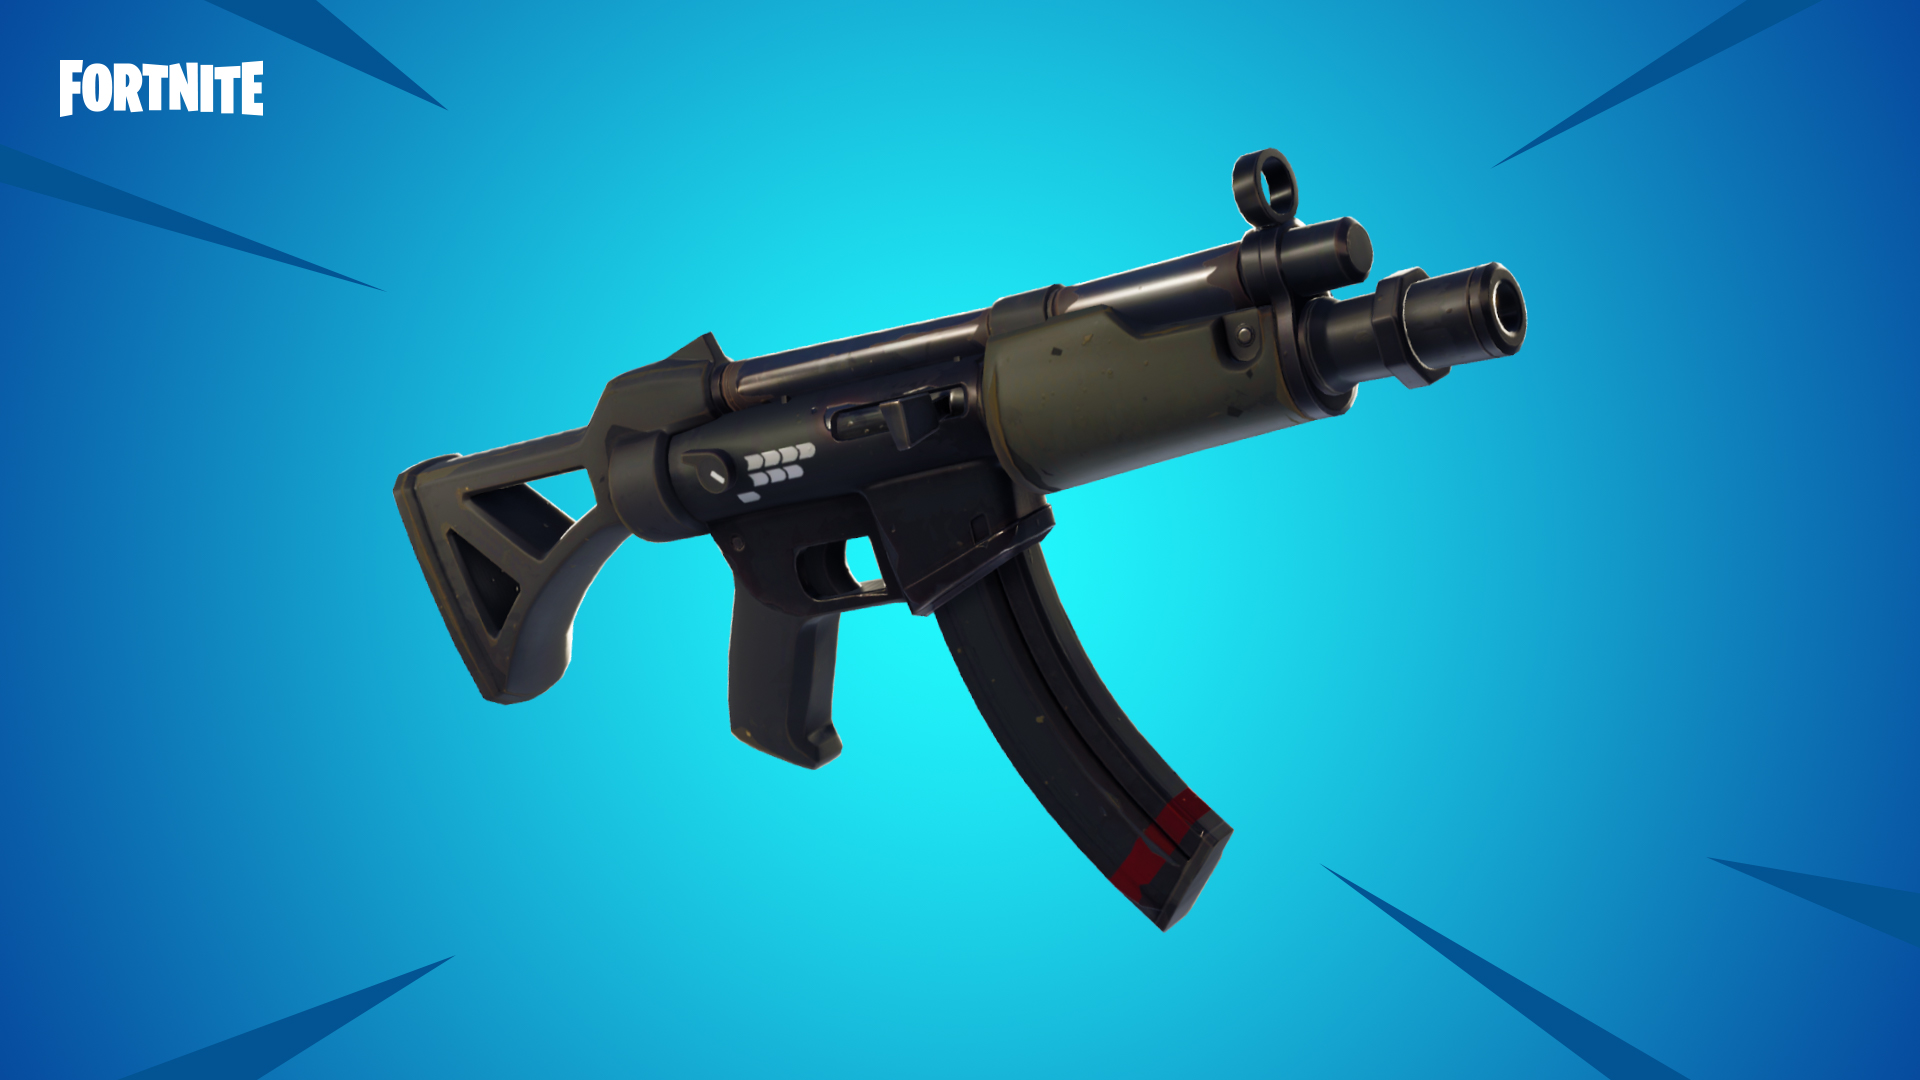 Fortnite Best Weapons List - All Fortnite Weapon Damage Stats | USgamer